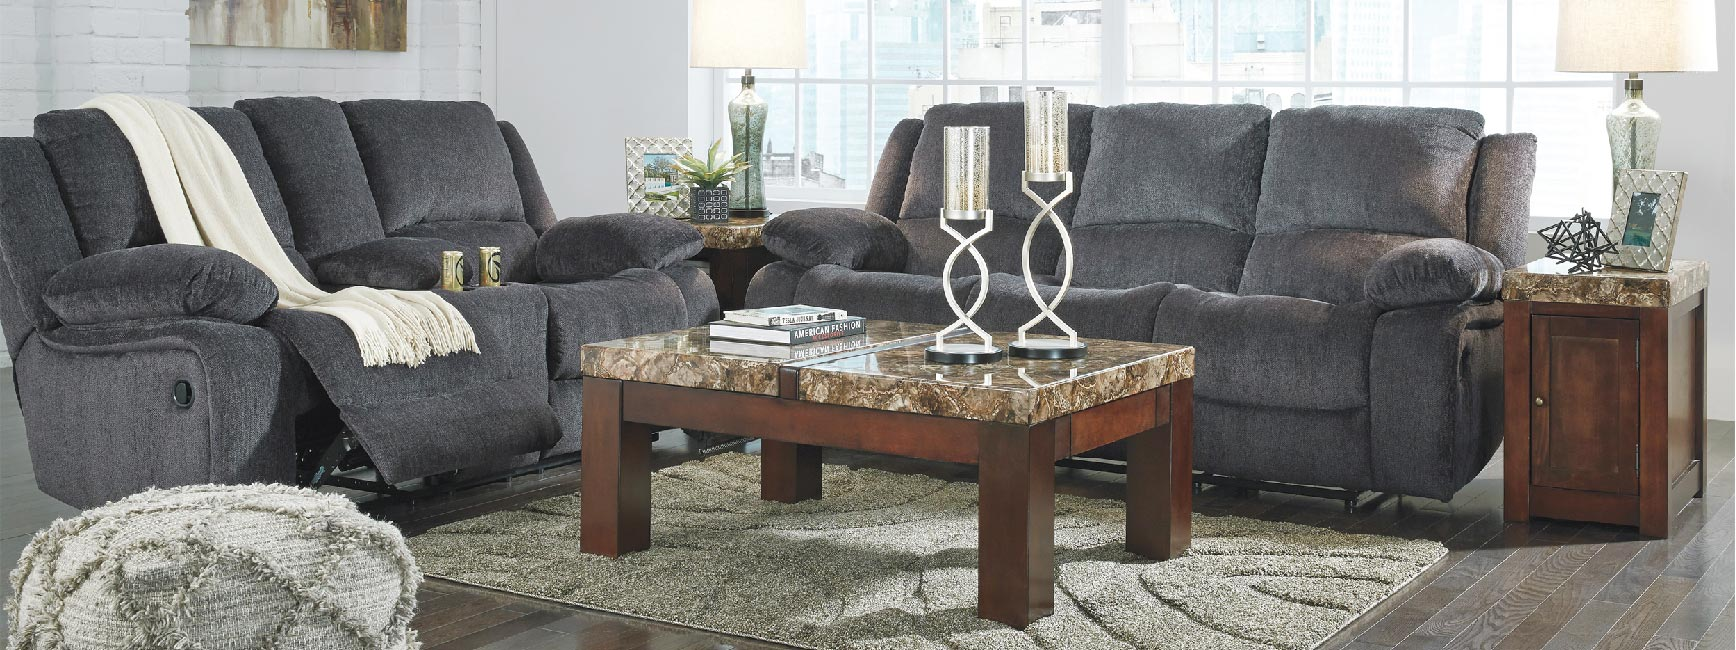 Furniture Stores Near Me With Layaway Visit Our Home Furniture Store In Sacramento Ca